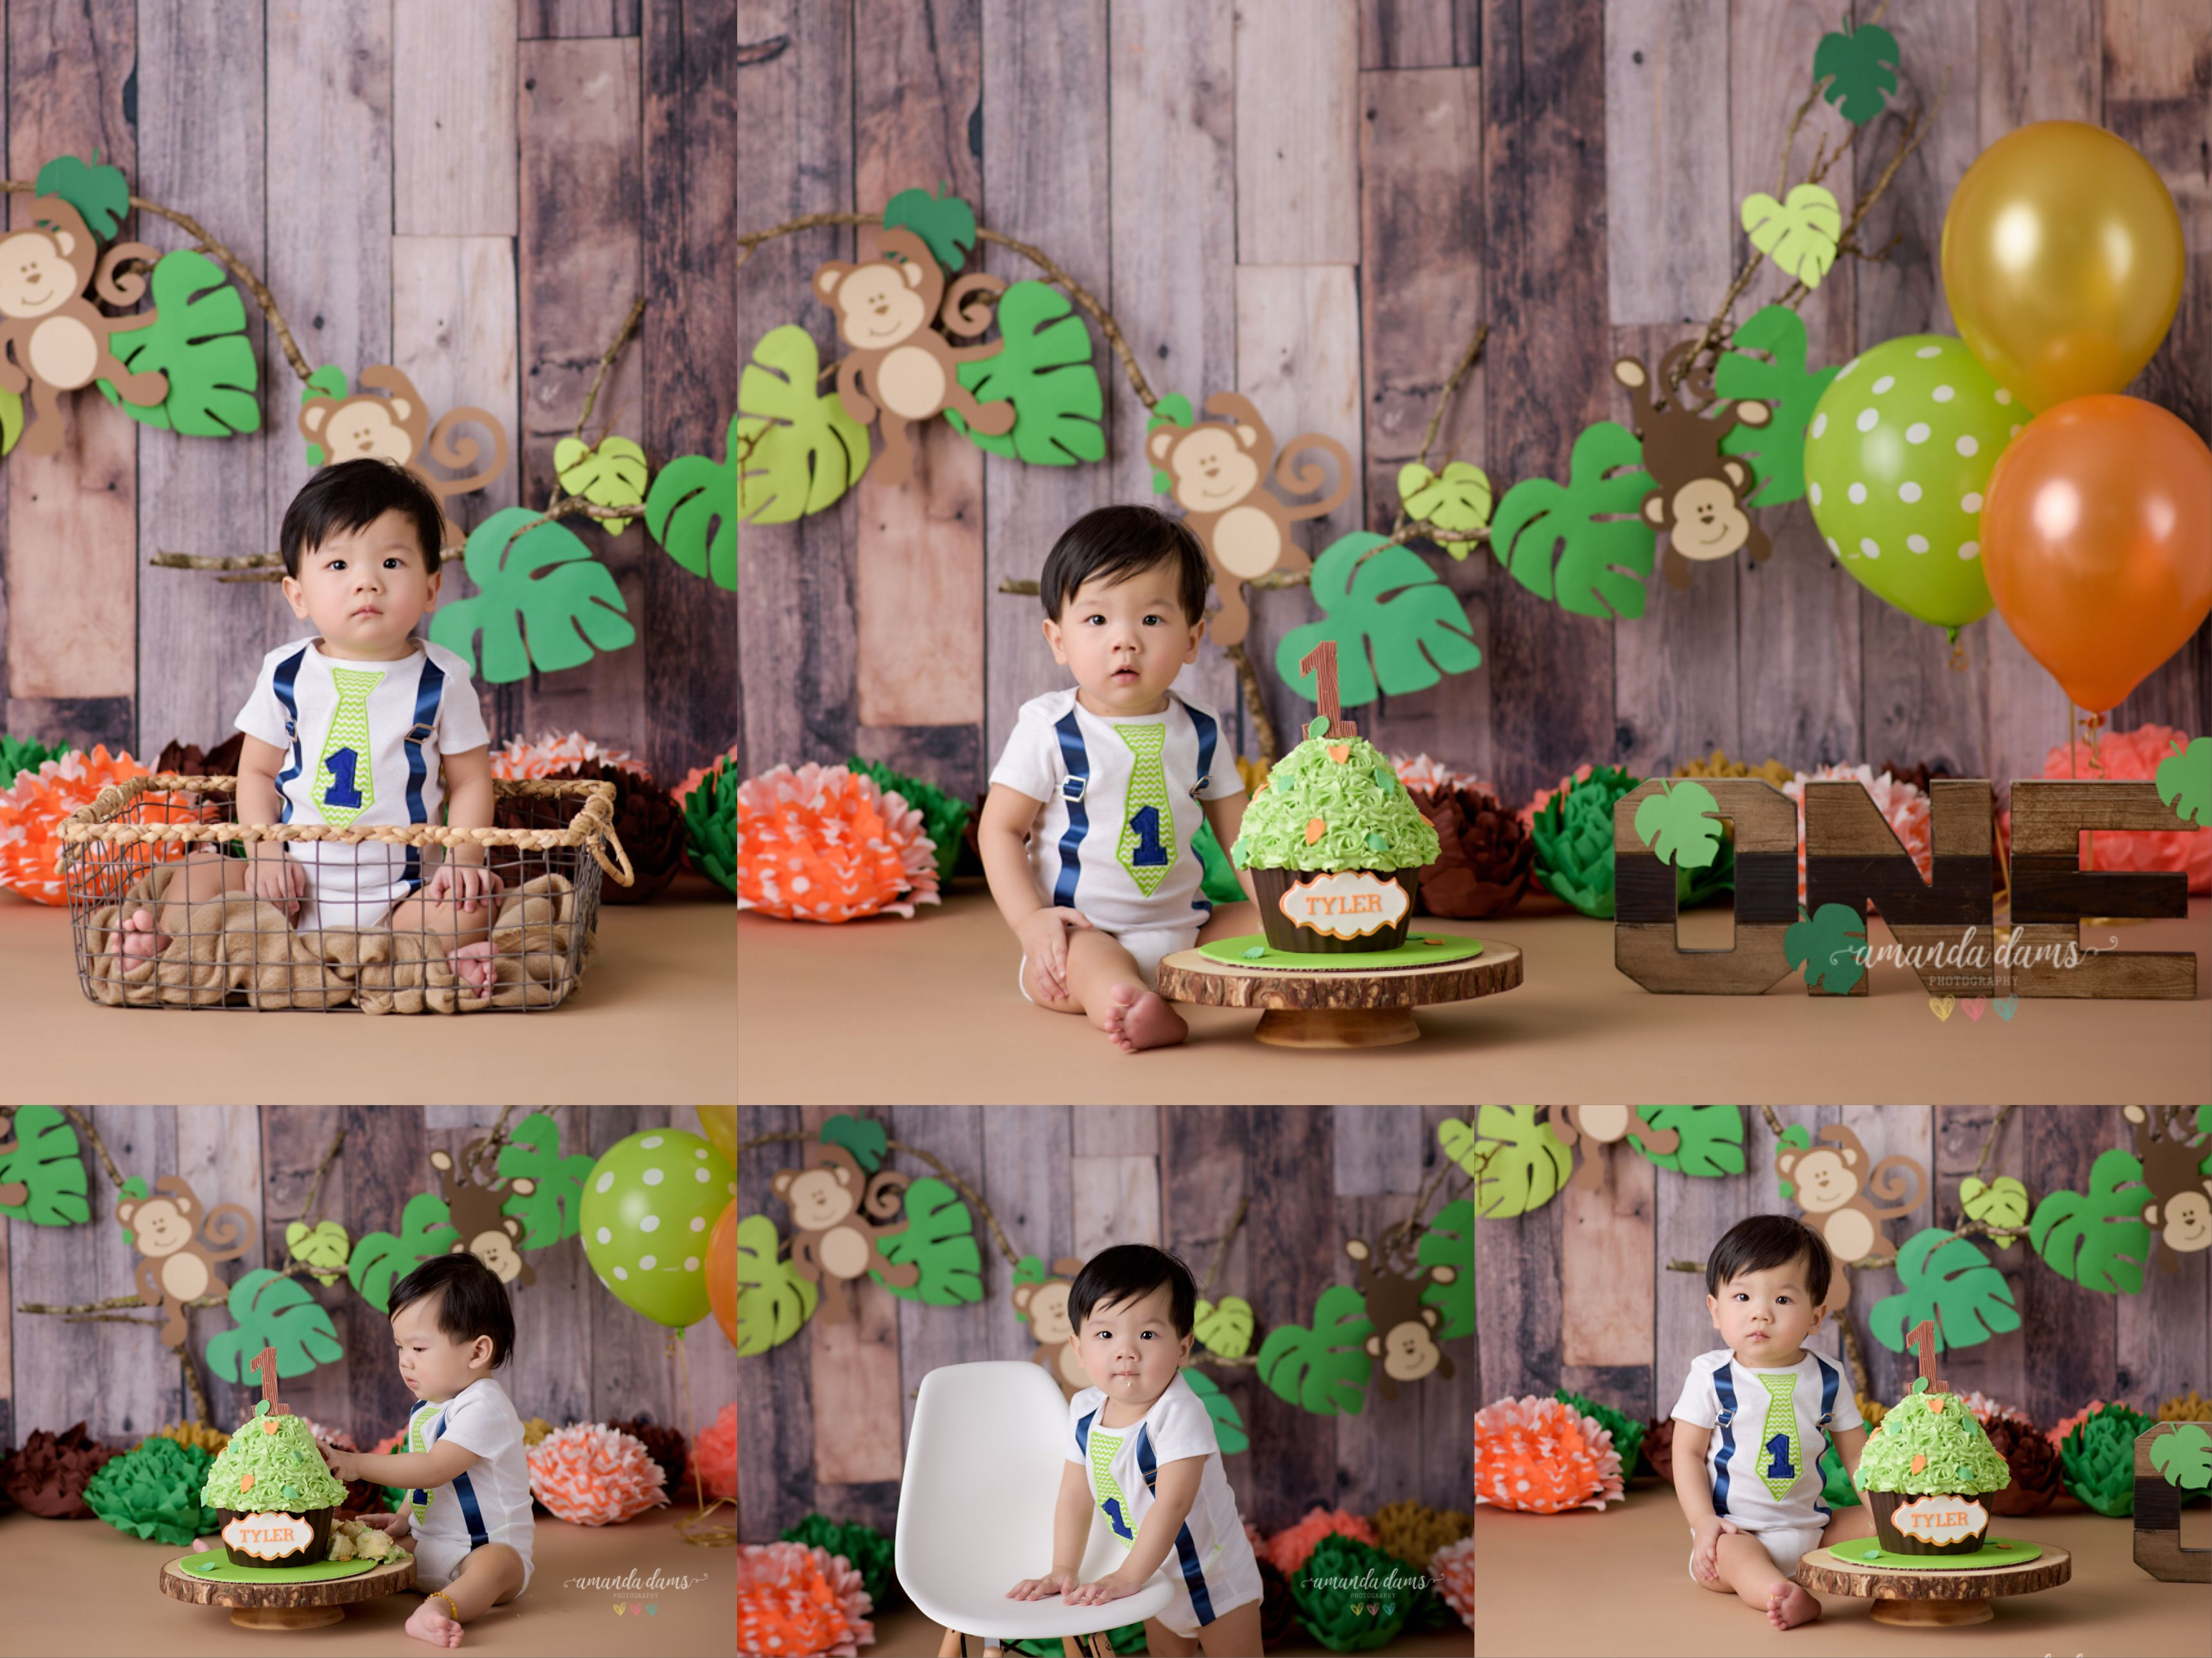 Cake smash inspiration ideas for boys Monkey forest jungle theme